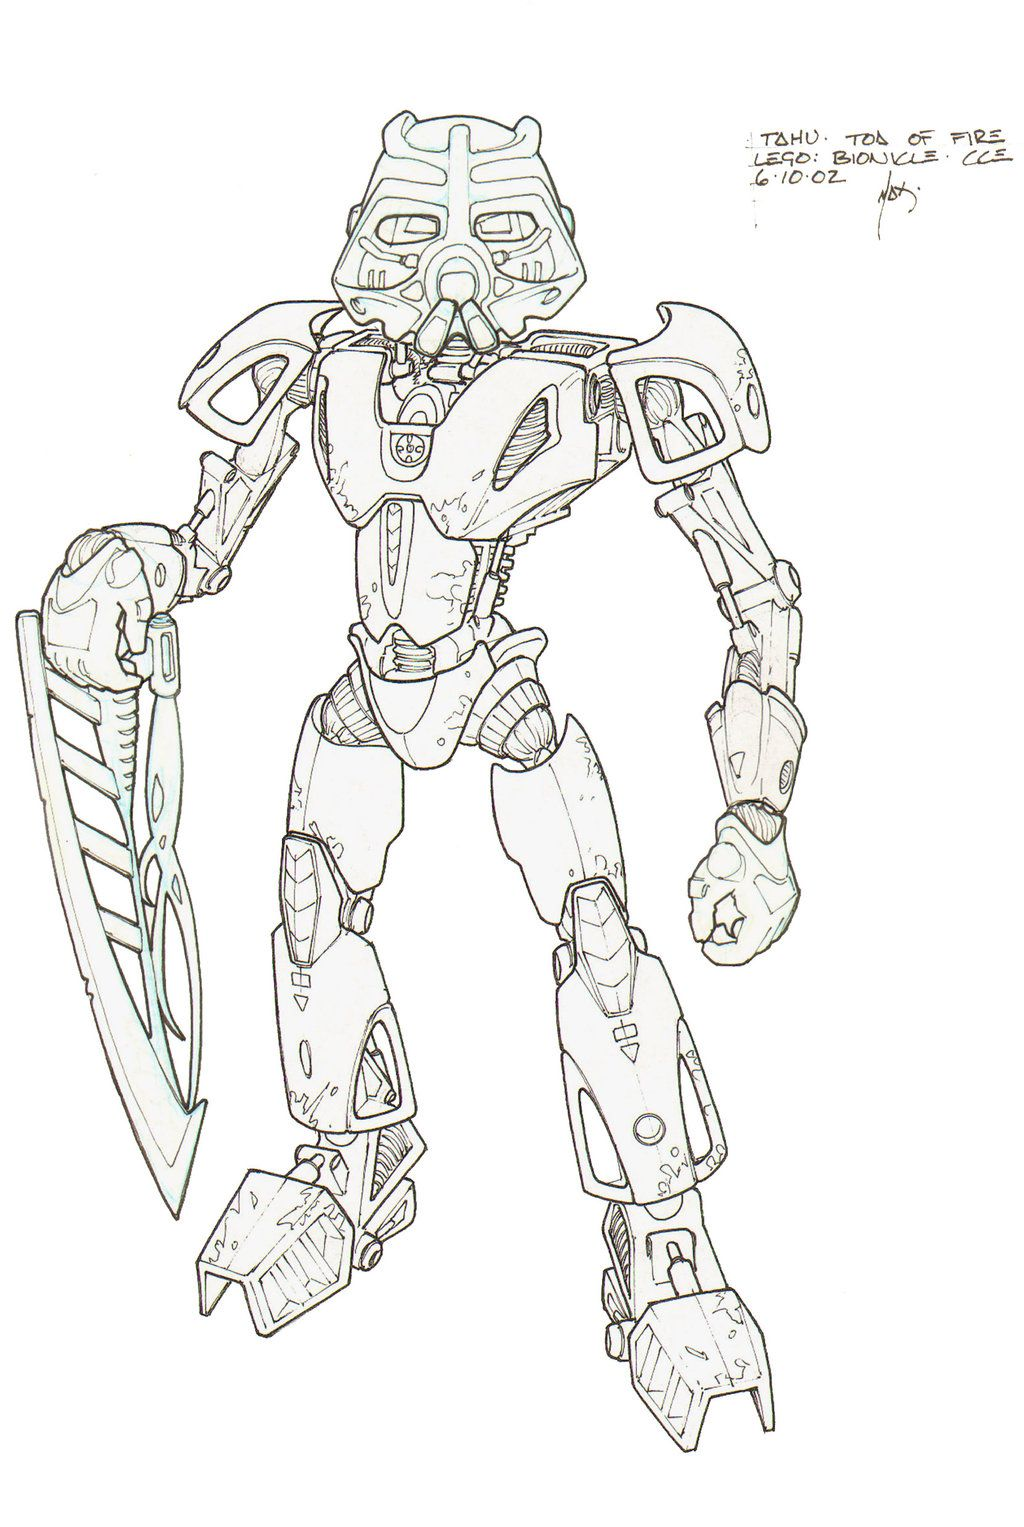 Tahu Toa of Fire by HK-887 on DeviantArt | Bionicle, Hero Factory ...